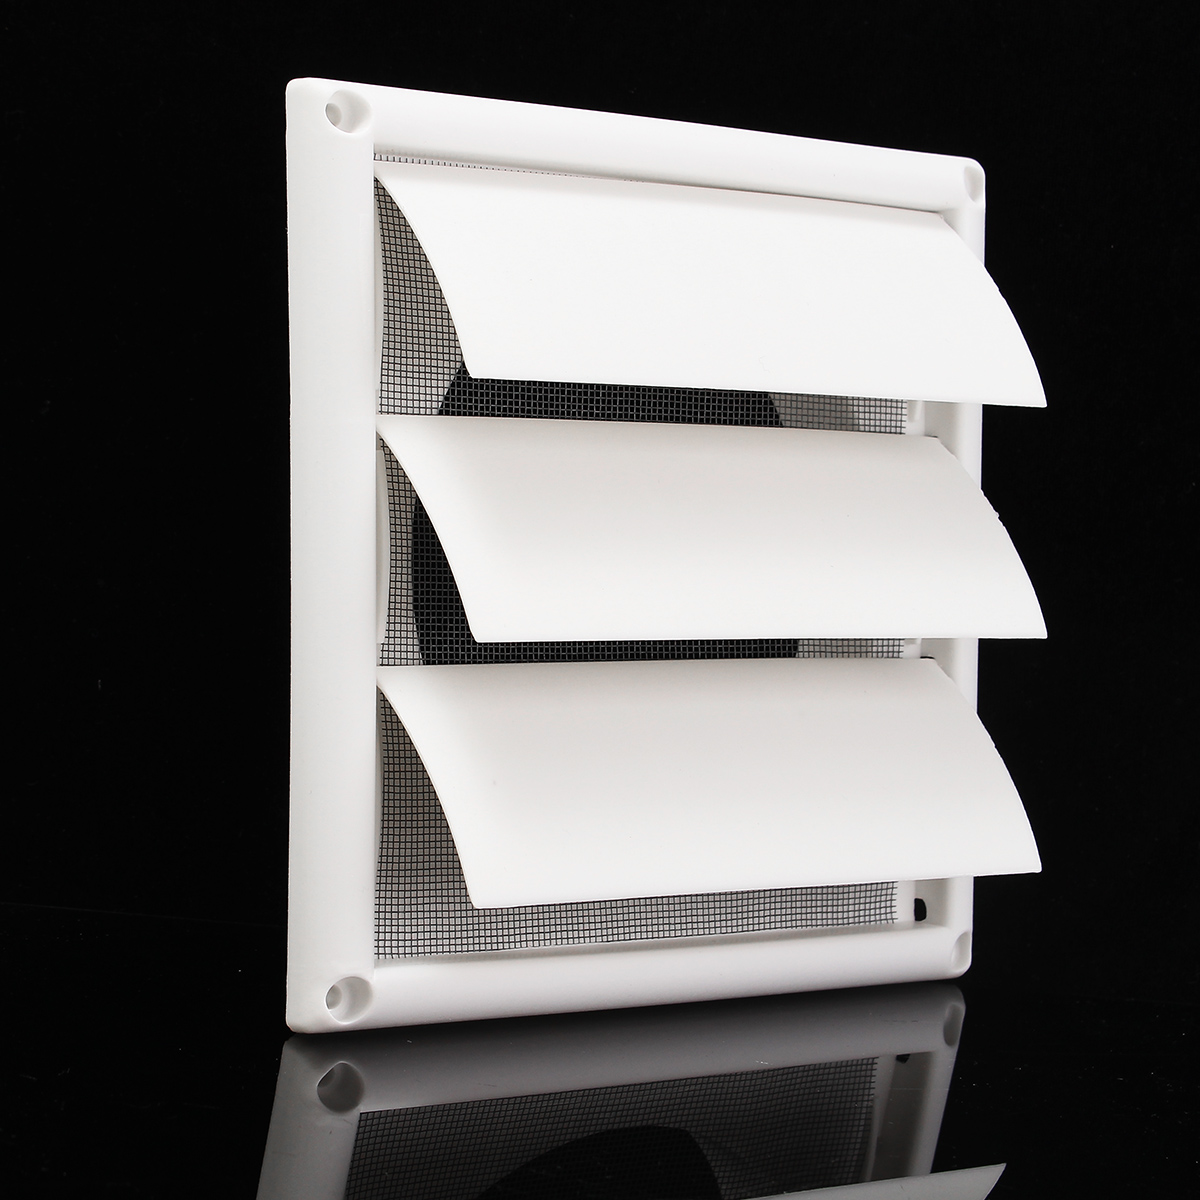 #6E655D Air Vent Grille Ventilation Cover Plastic White Wall  Highly Rated 7009 Ventilation Vents And Grilles wallpapers with 1200x1200 px on helpvideos.info - Air Conditioners, Air Coolers and more